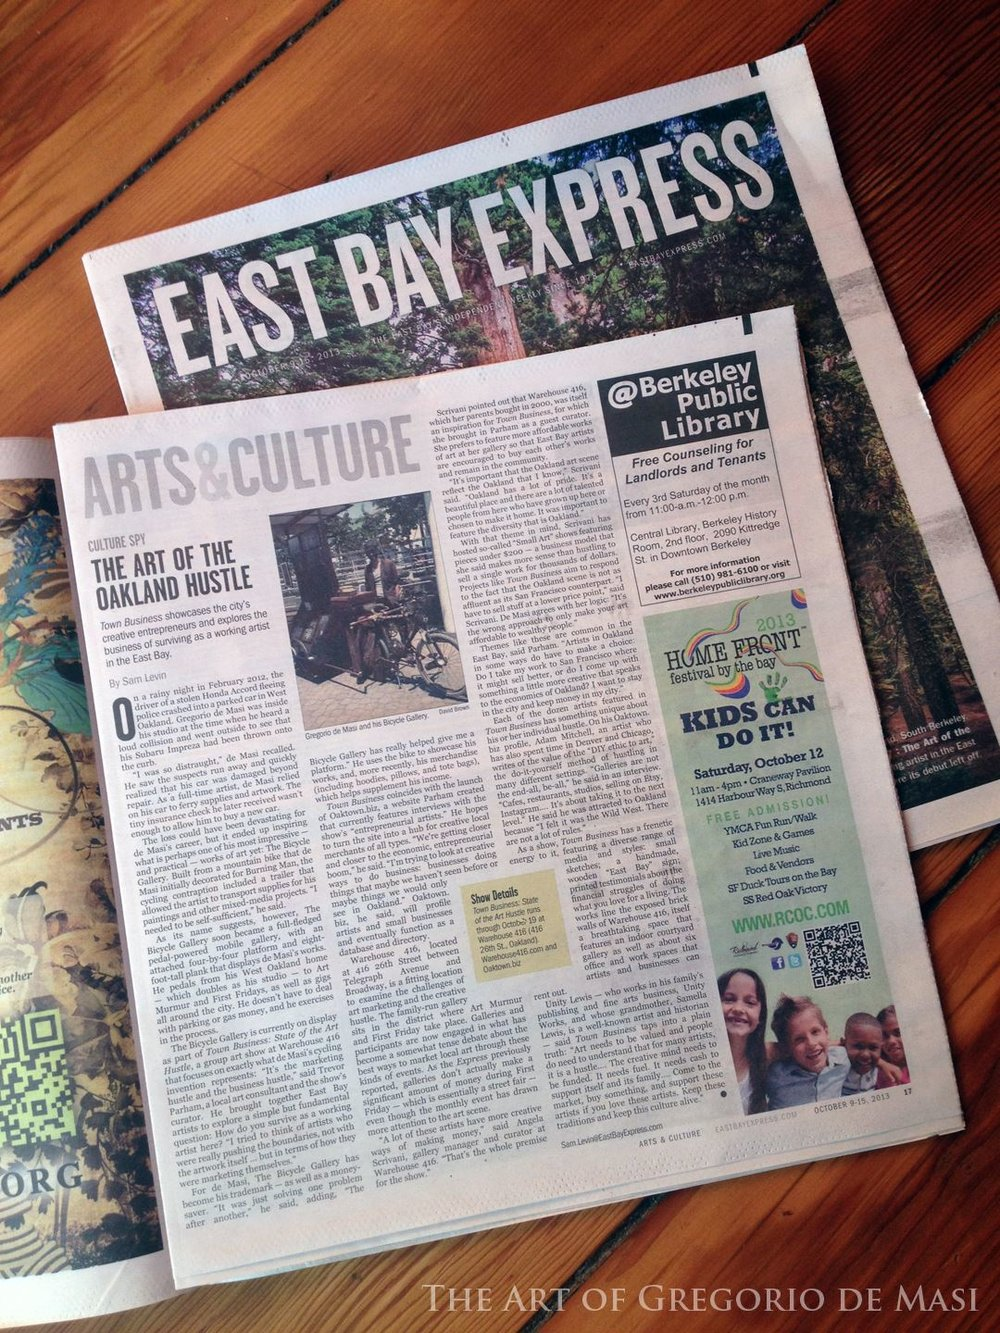 East Bay Express   interviewed me for an article about the Art of the Oakland Hustle, and my Bicycle Art Gallery   ARTICLE:    eastbayexpress.com/the-art-of-the-oakland-hustle     VIDEO INTERVIEW:    https://www.youtube.com/watch